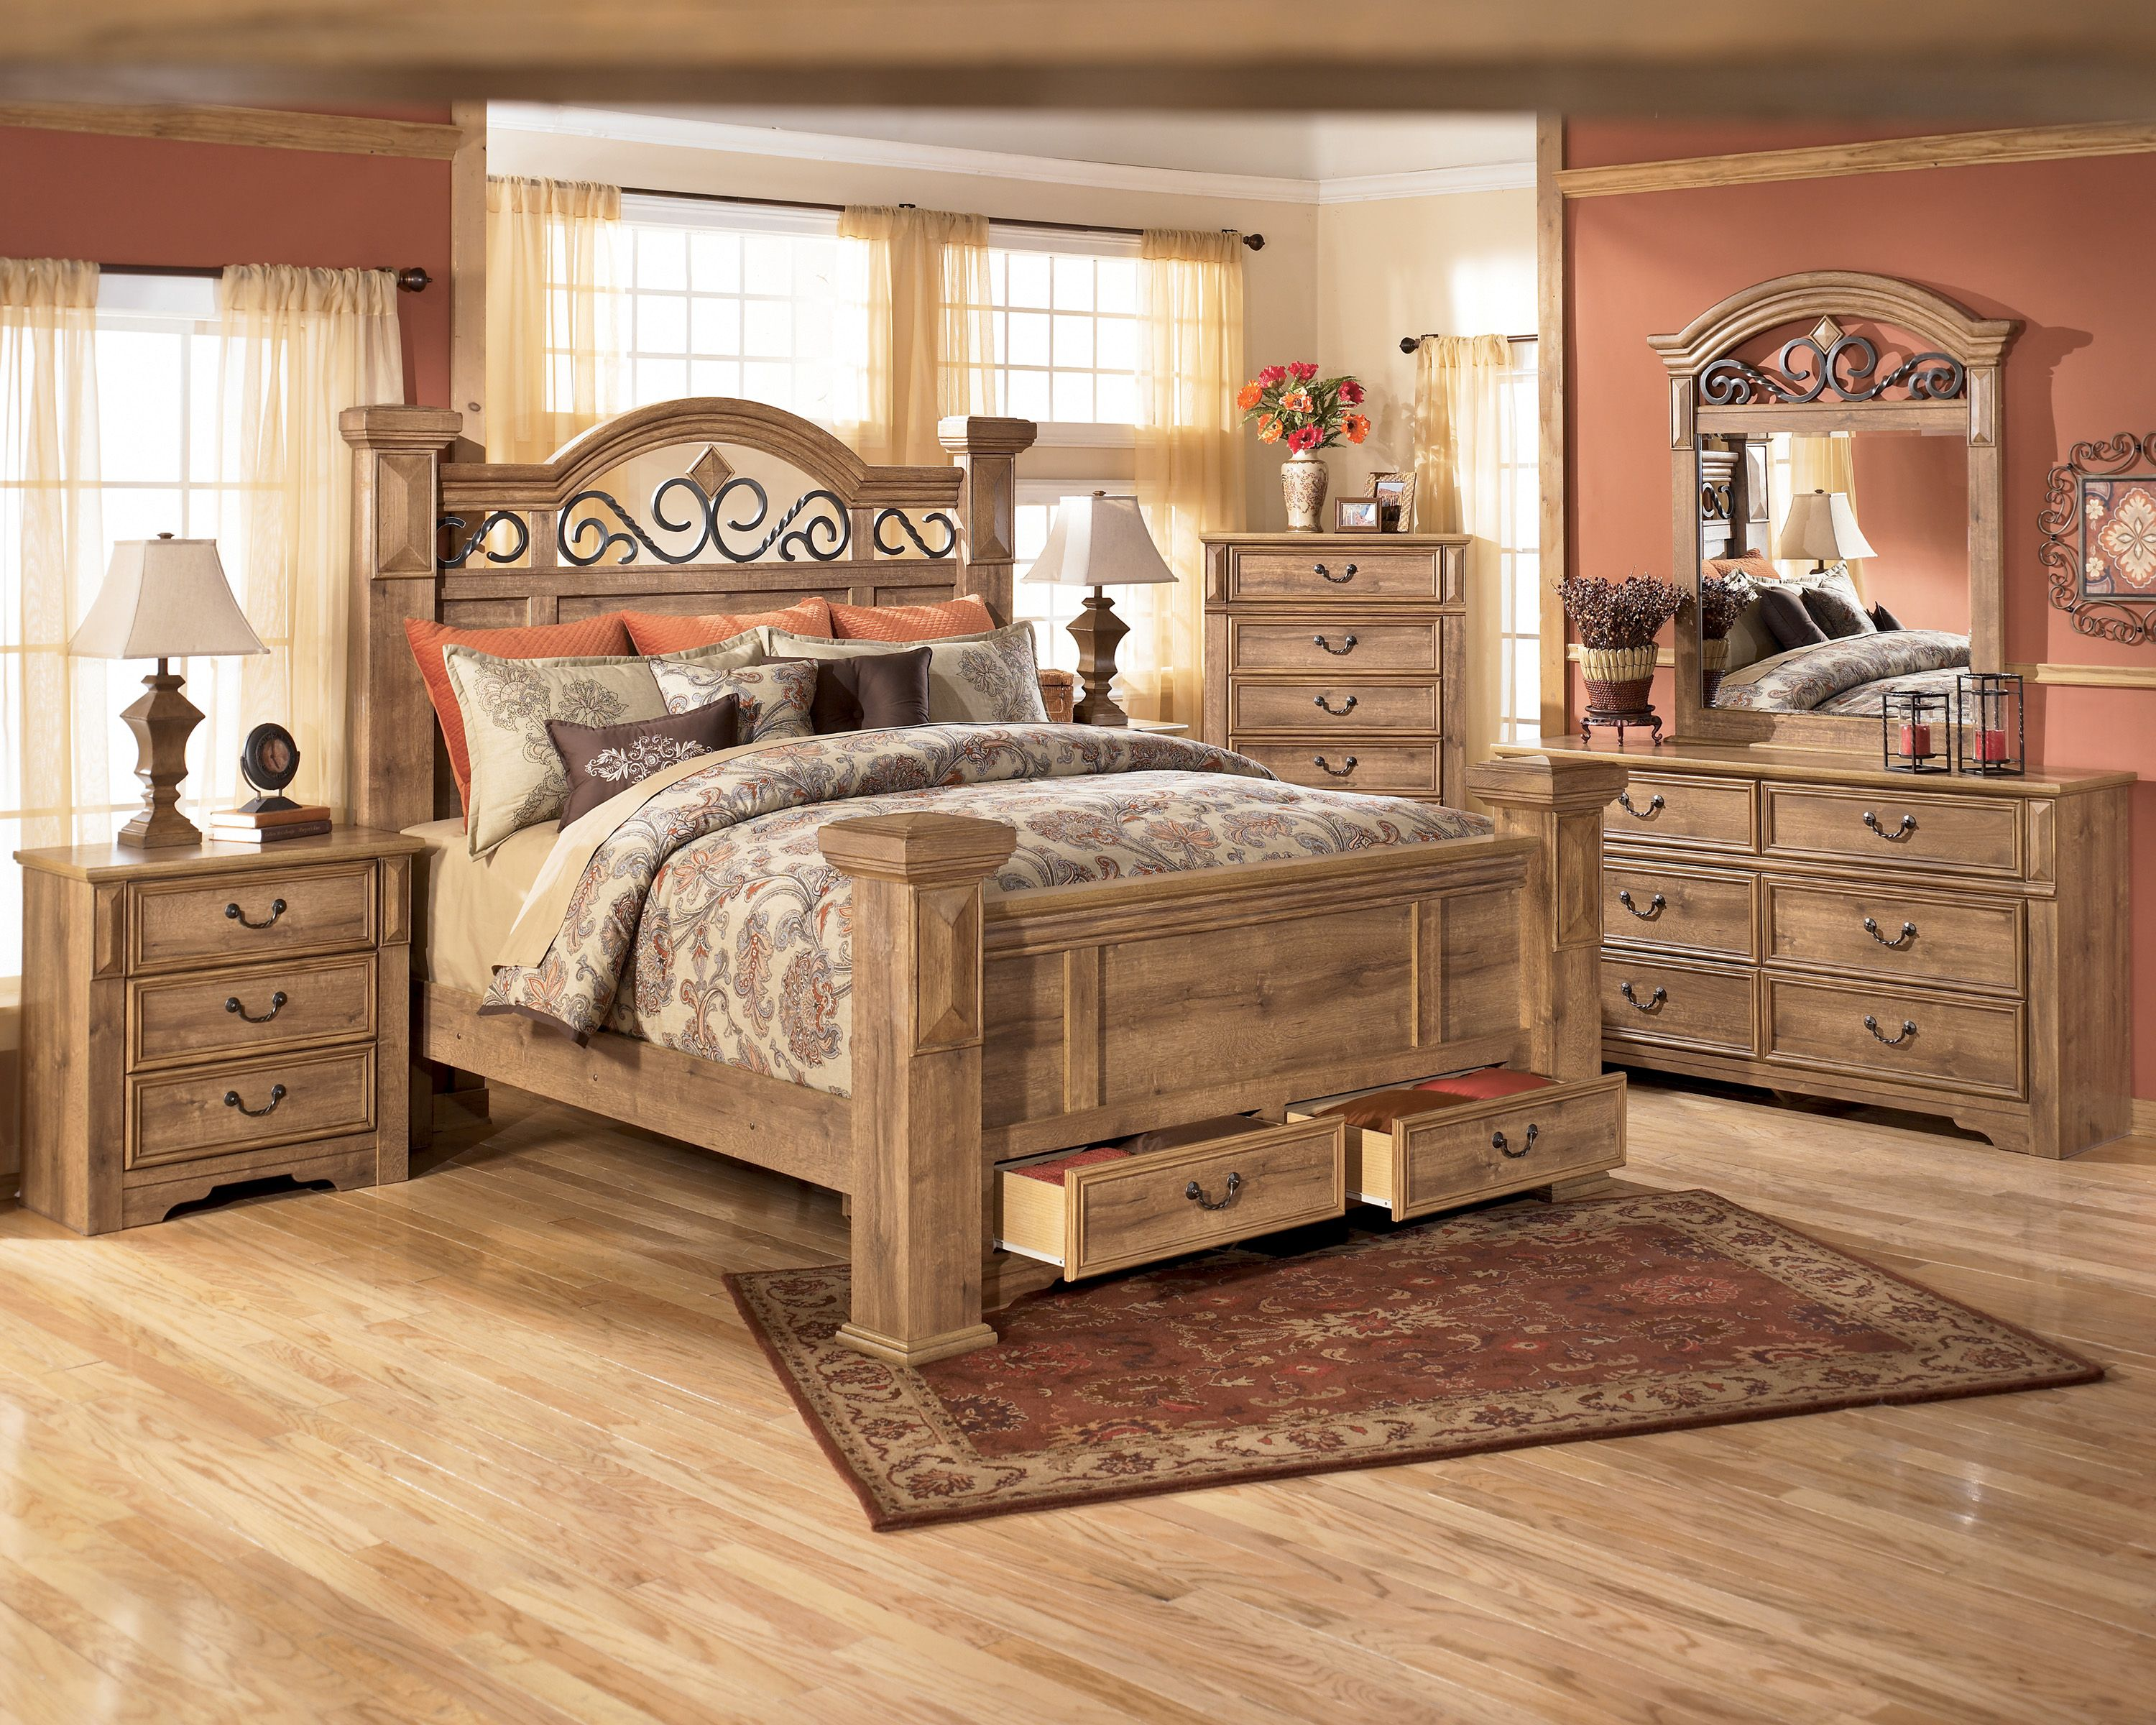 Luxury Bedroom Set Furniture Ideas